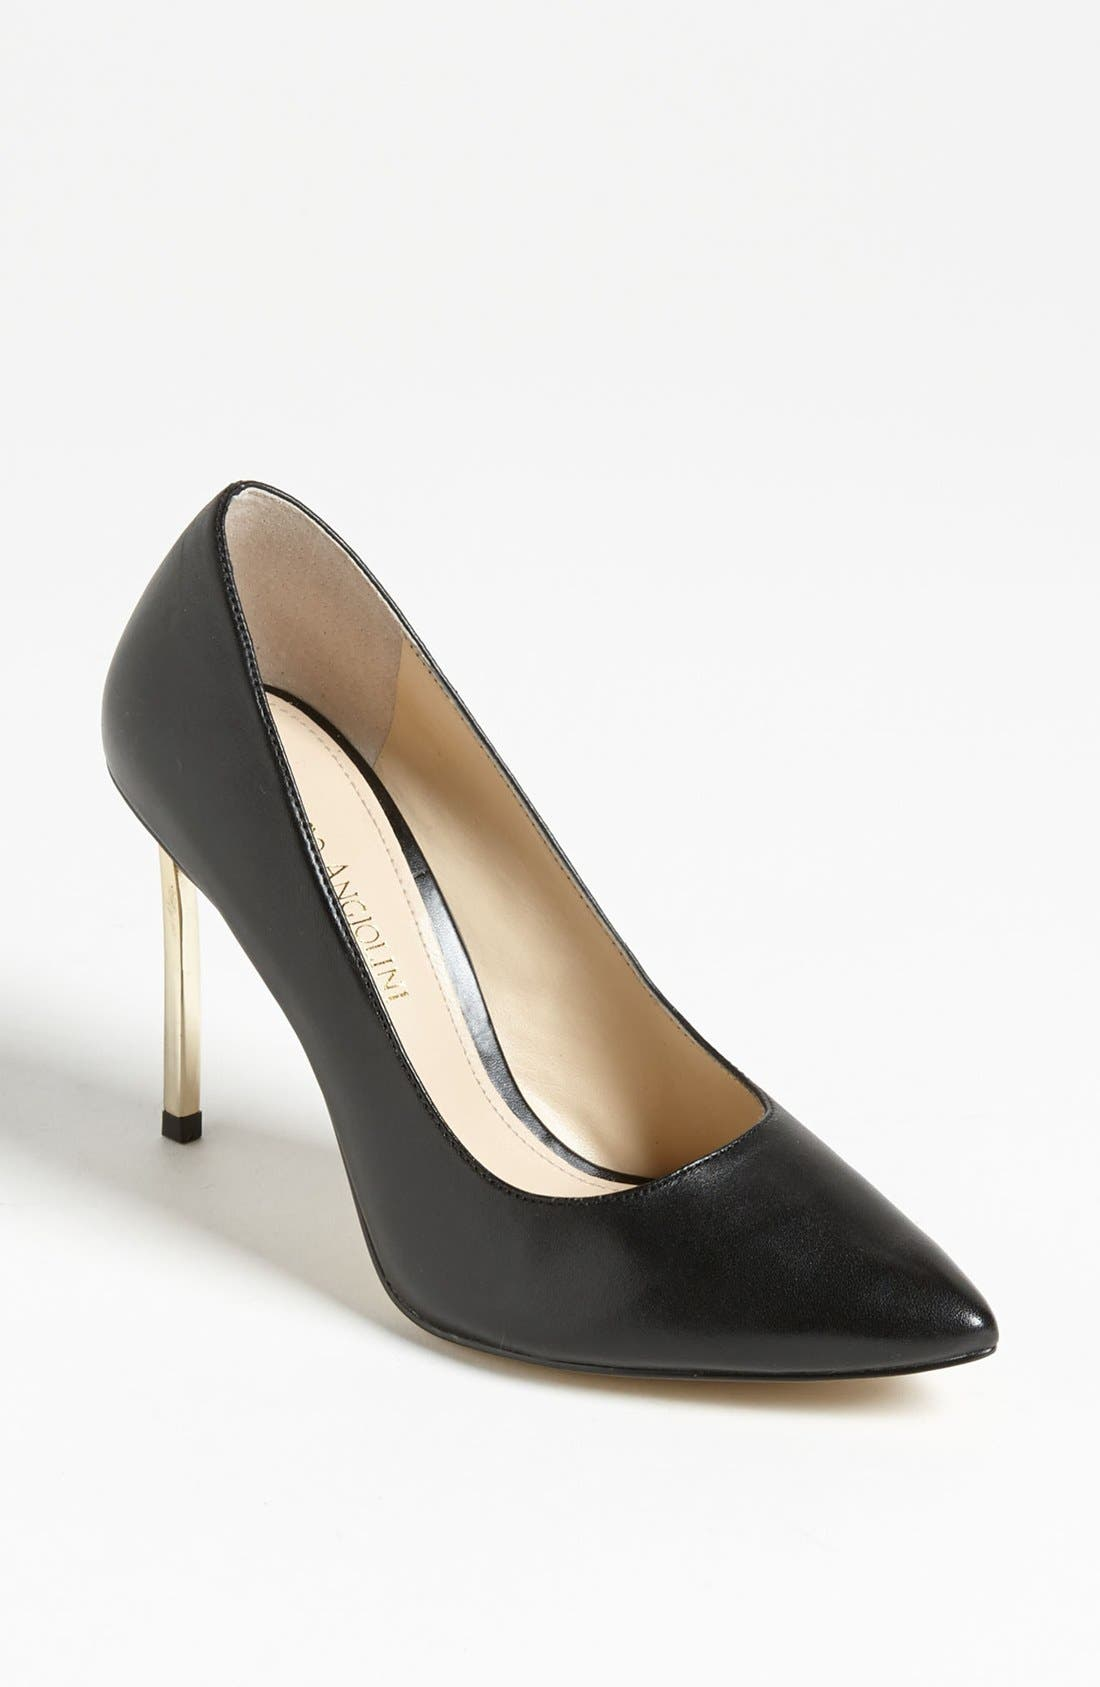 Alternate Image 1 Selected - Enzo Angiolini 'Infiniti' Pump (Special Purchase)